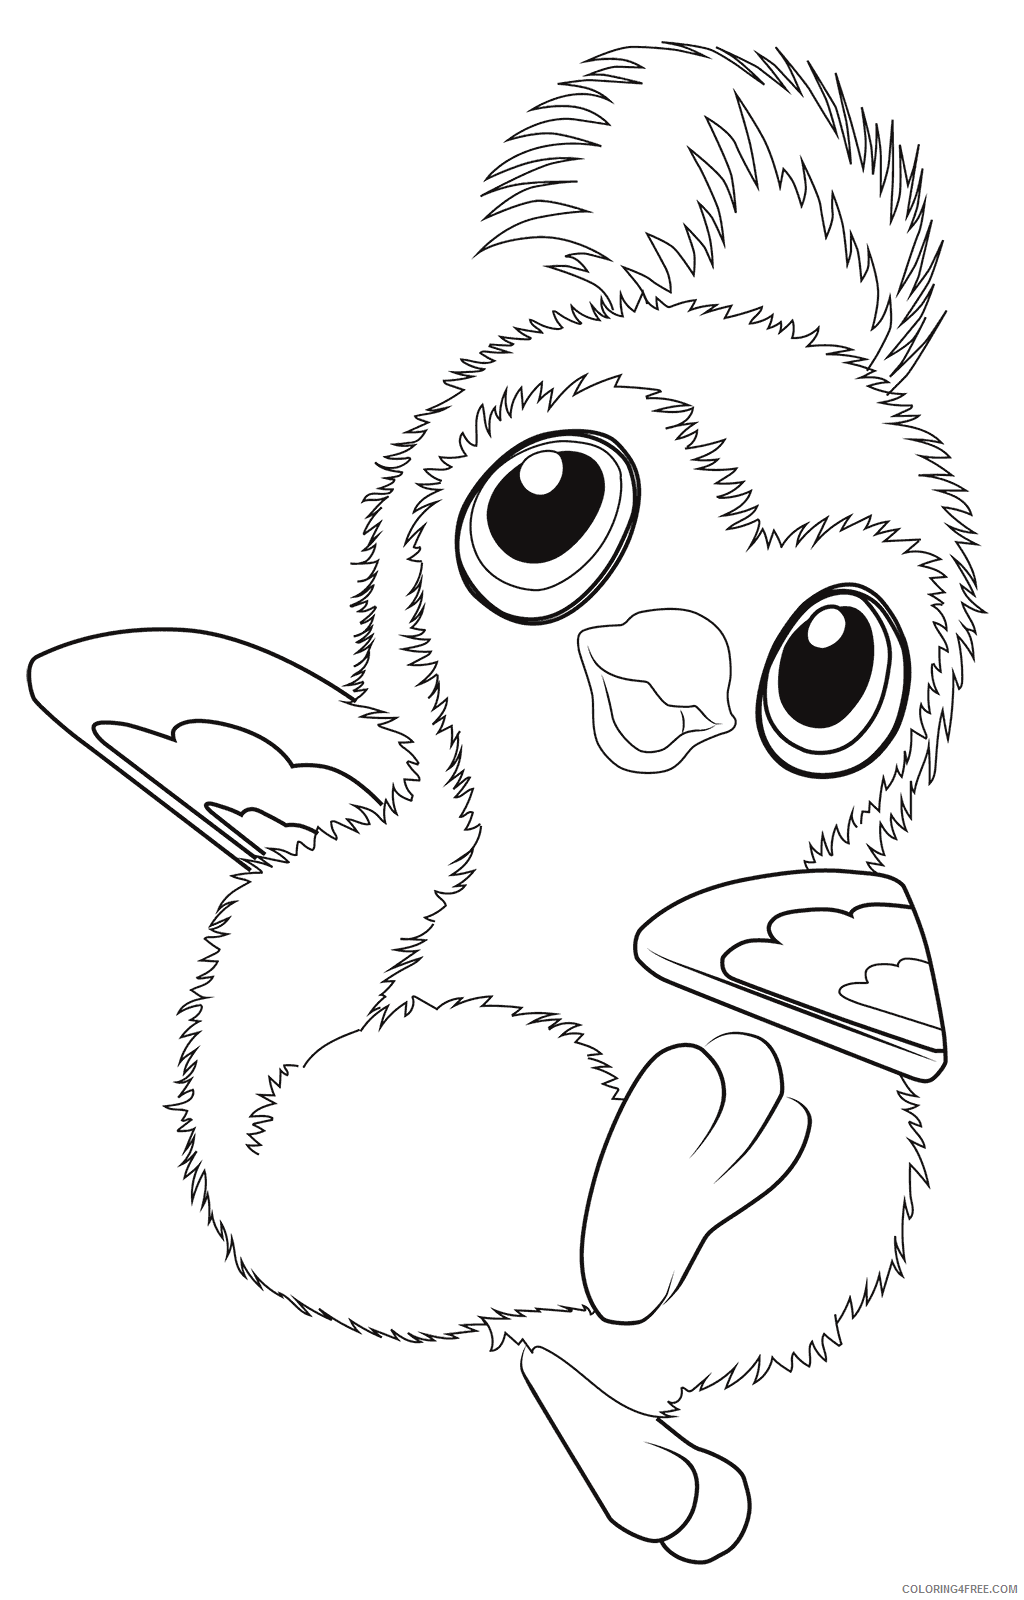 Hatchimals Coloring Pages Hatchimals Penguin Printable 2021 3098 Coloring4free